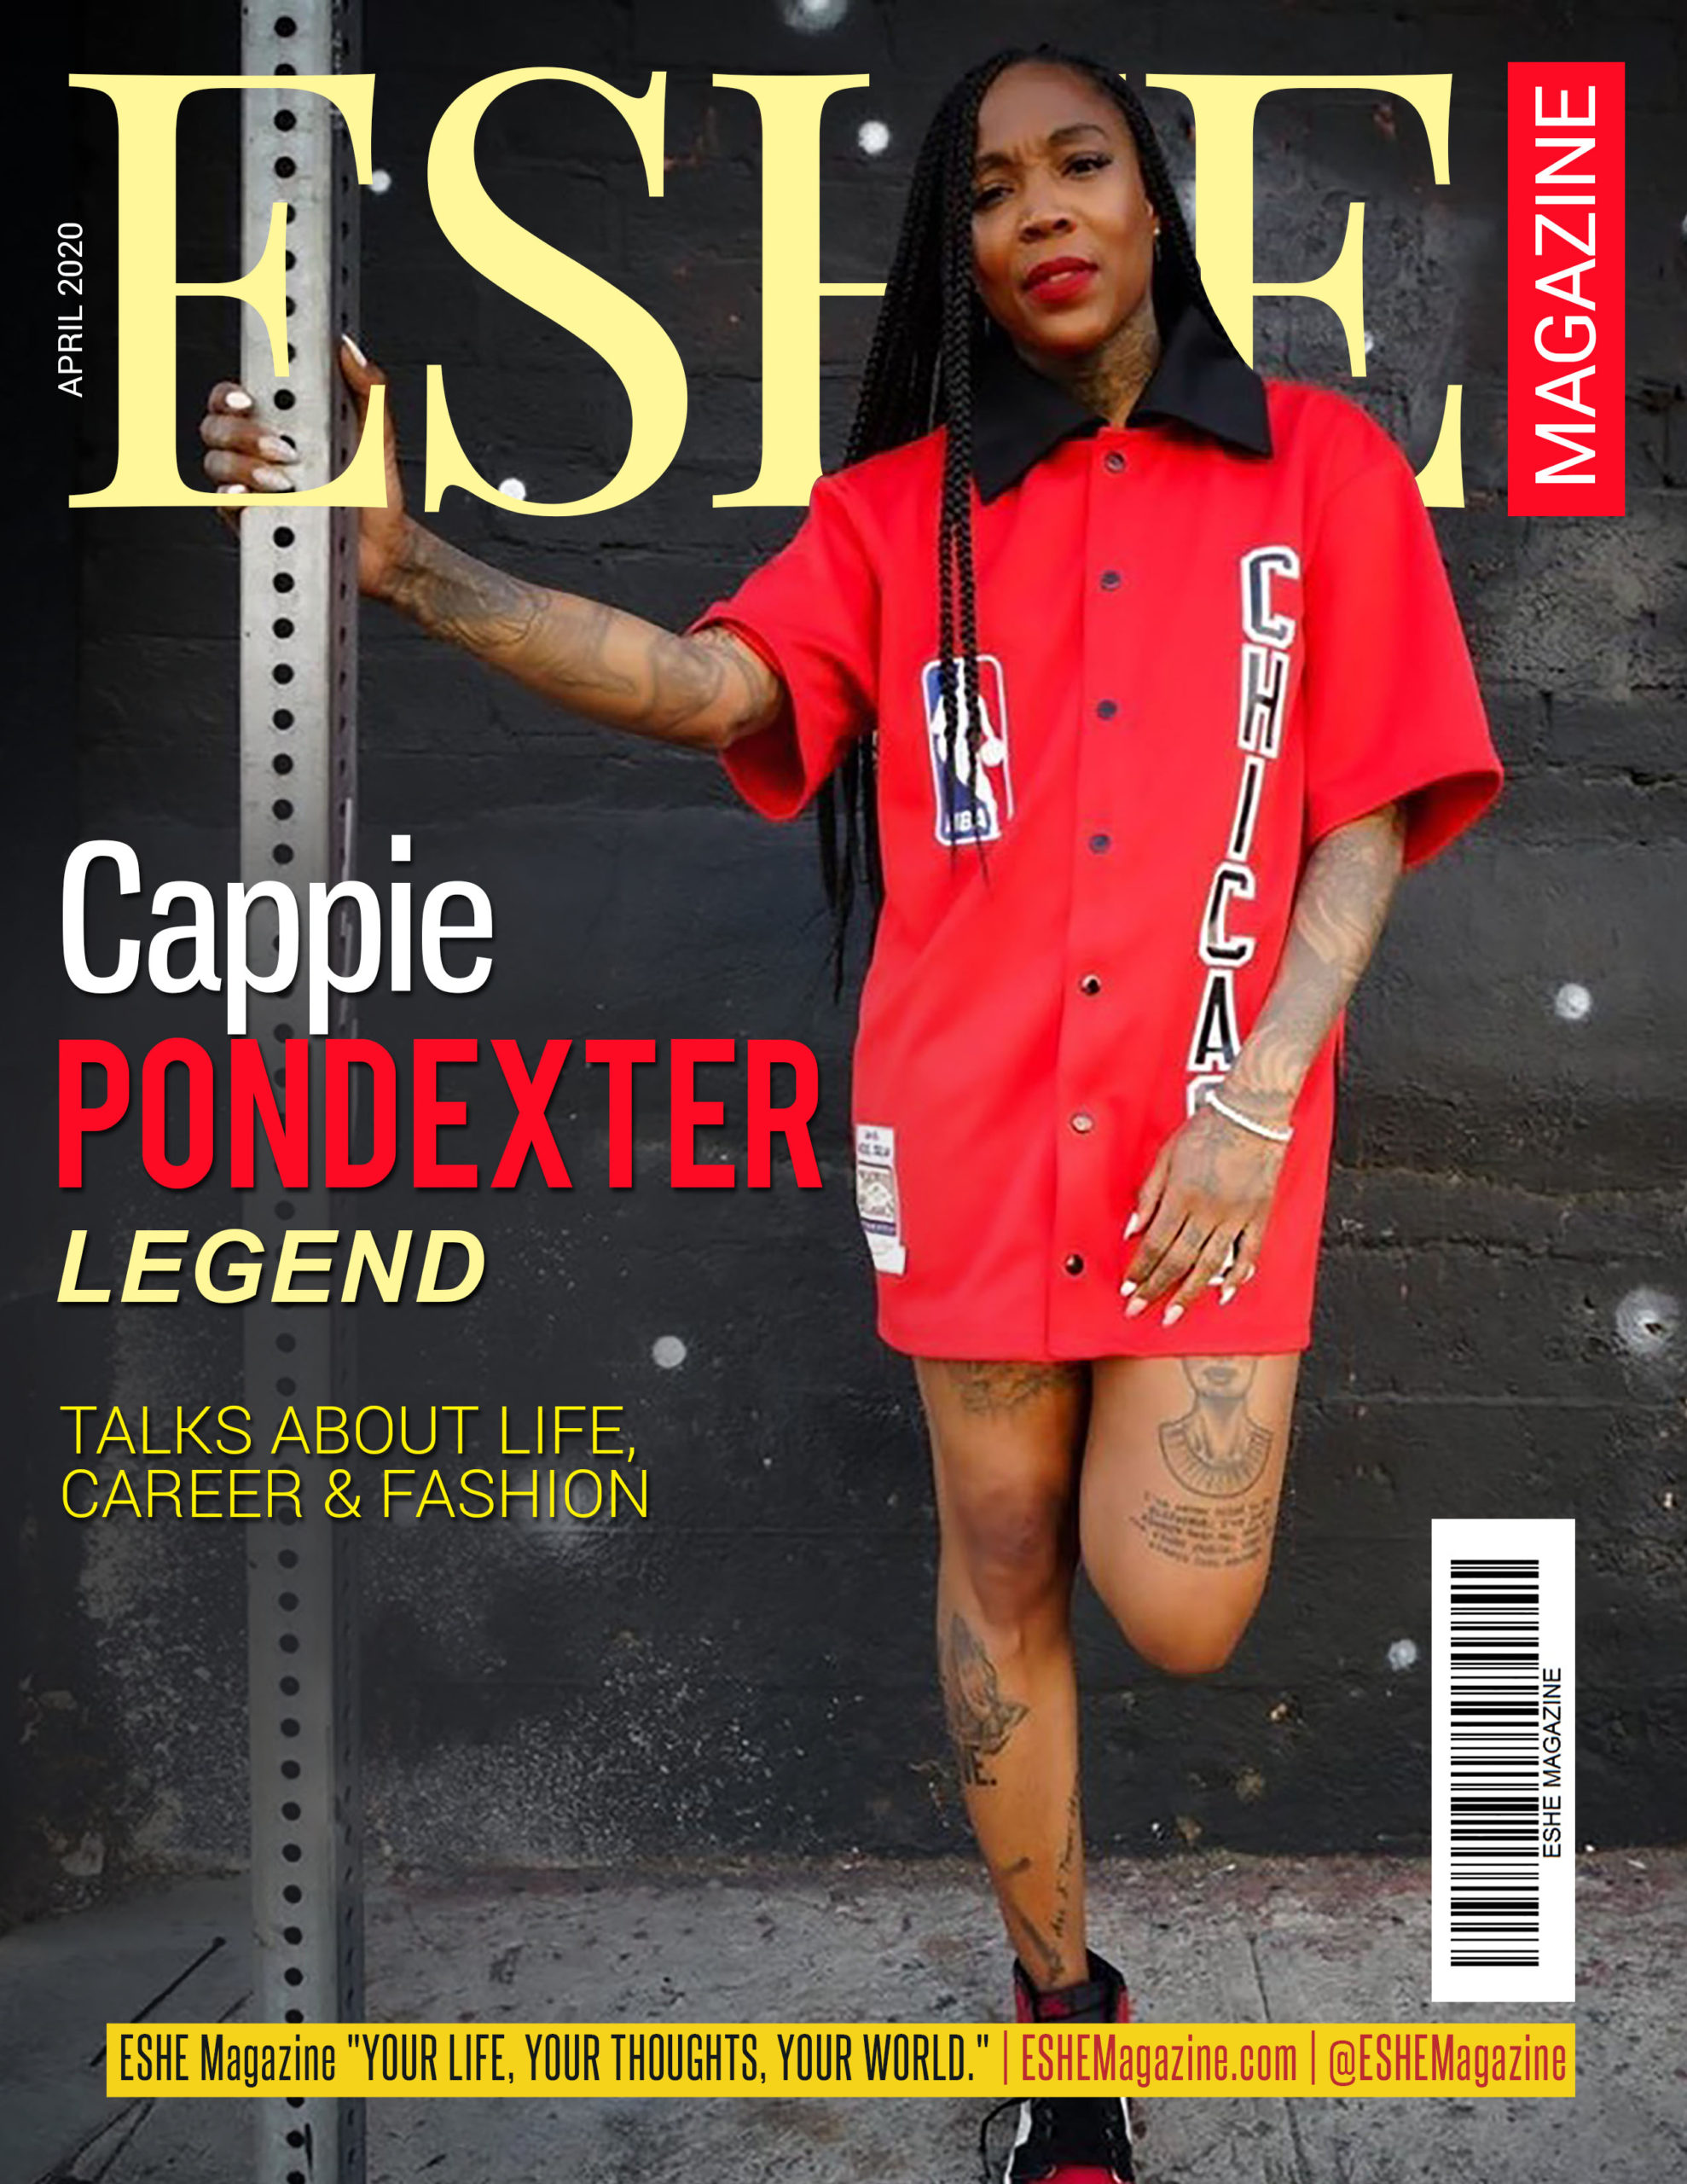 Cappie Pondexter | LEGEND